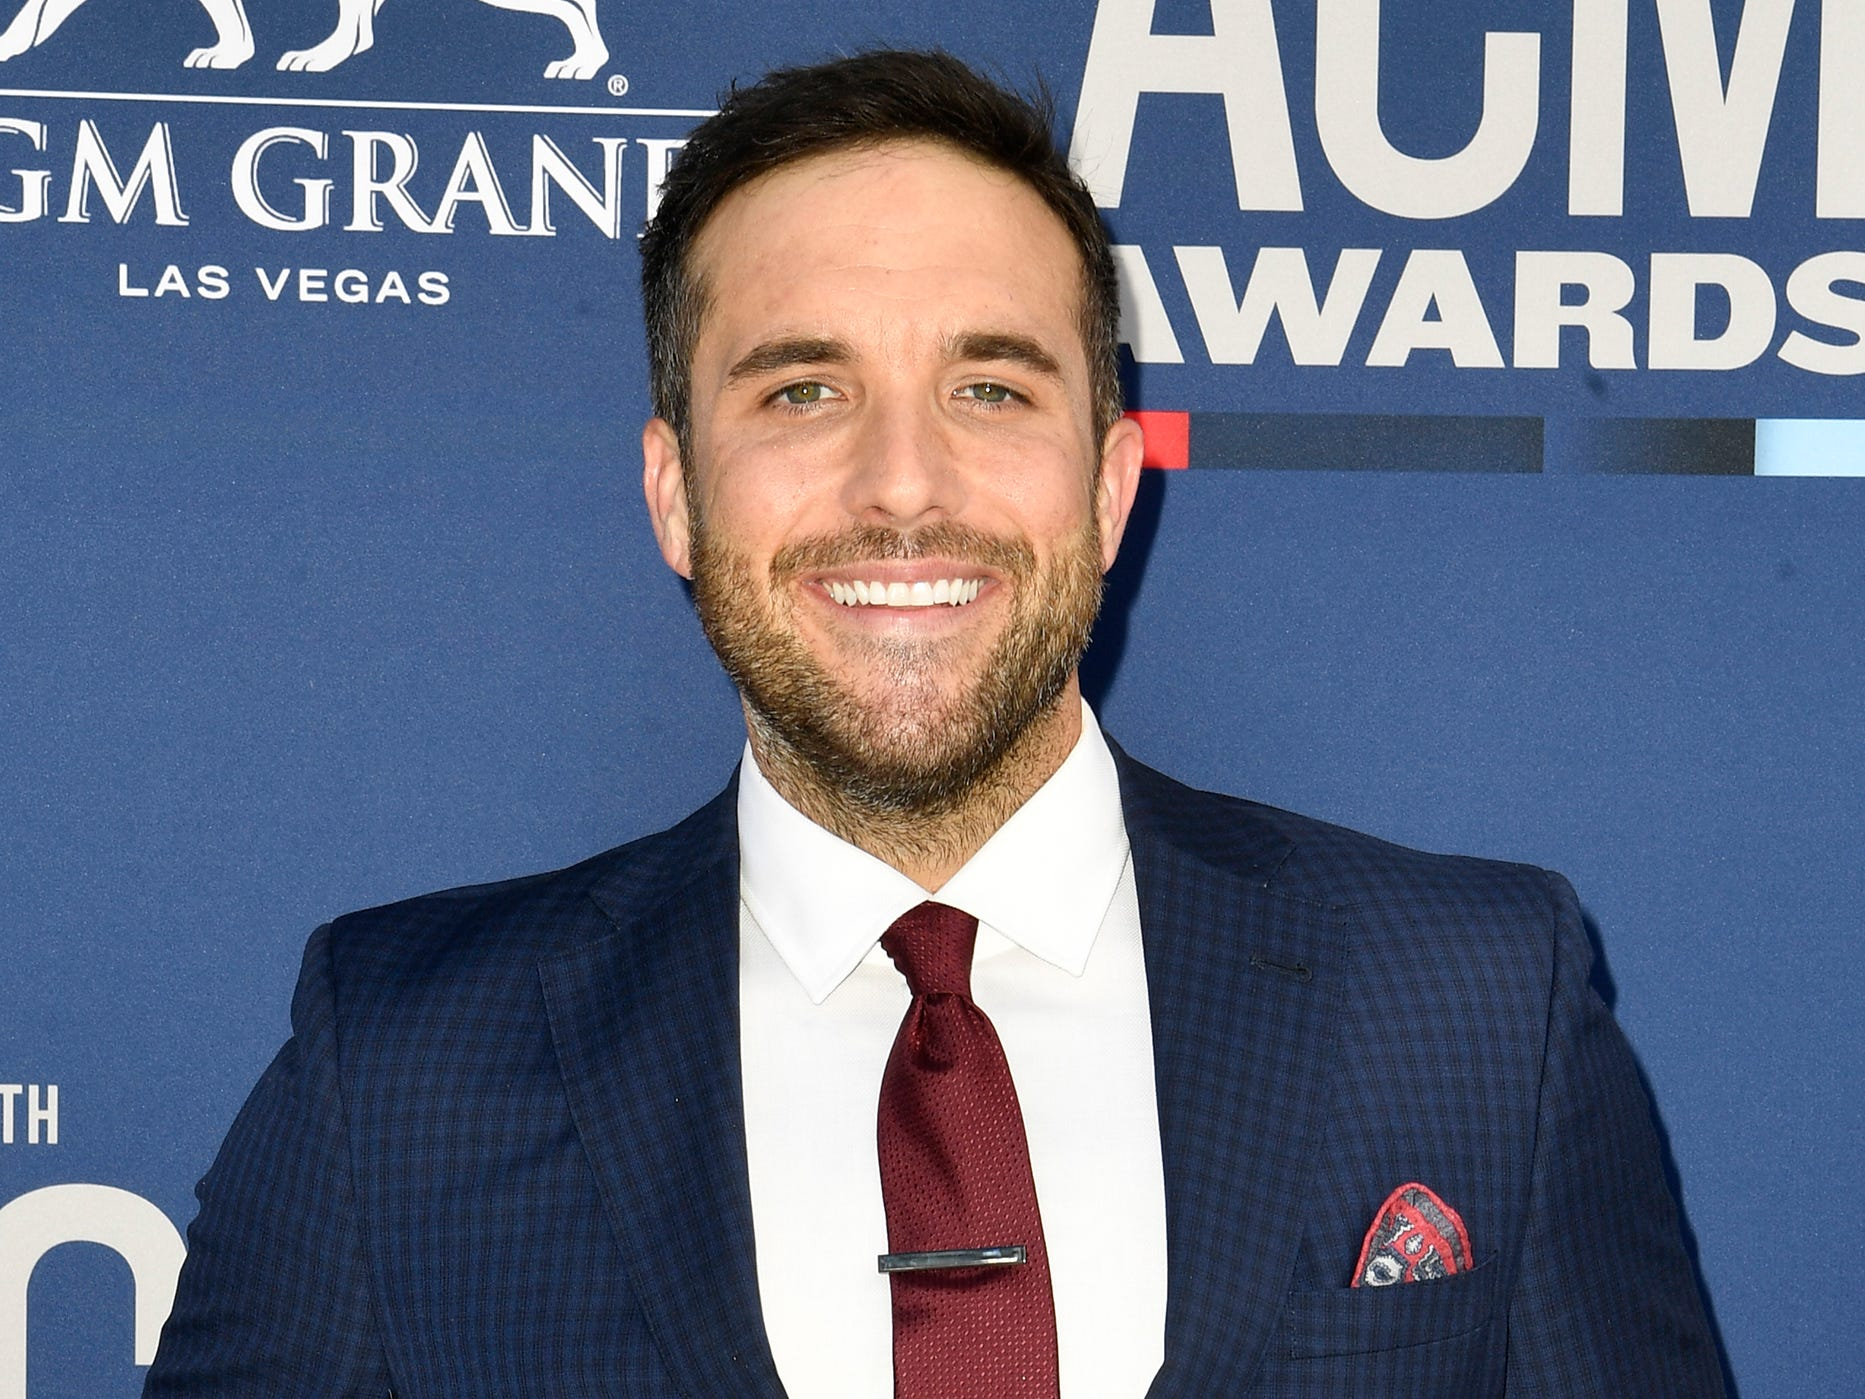 Tyler Rich walks the red carpet at the 54TH Academy of Country Music Awards Sunday, April 7, 2019, in Las Vegas, Nev.